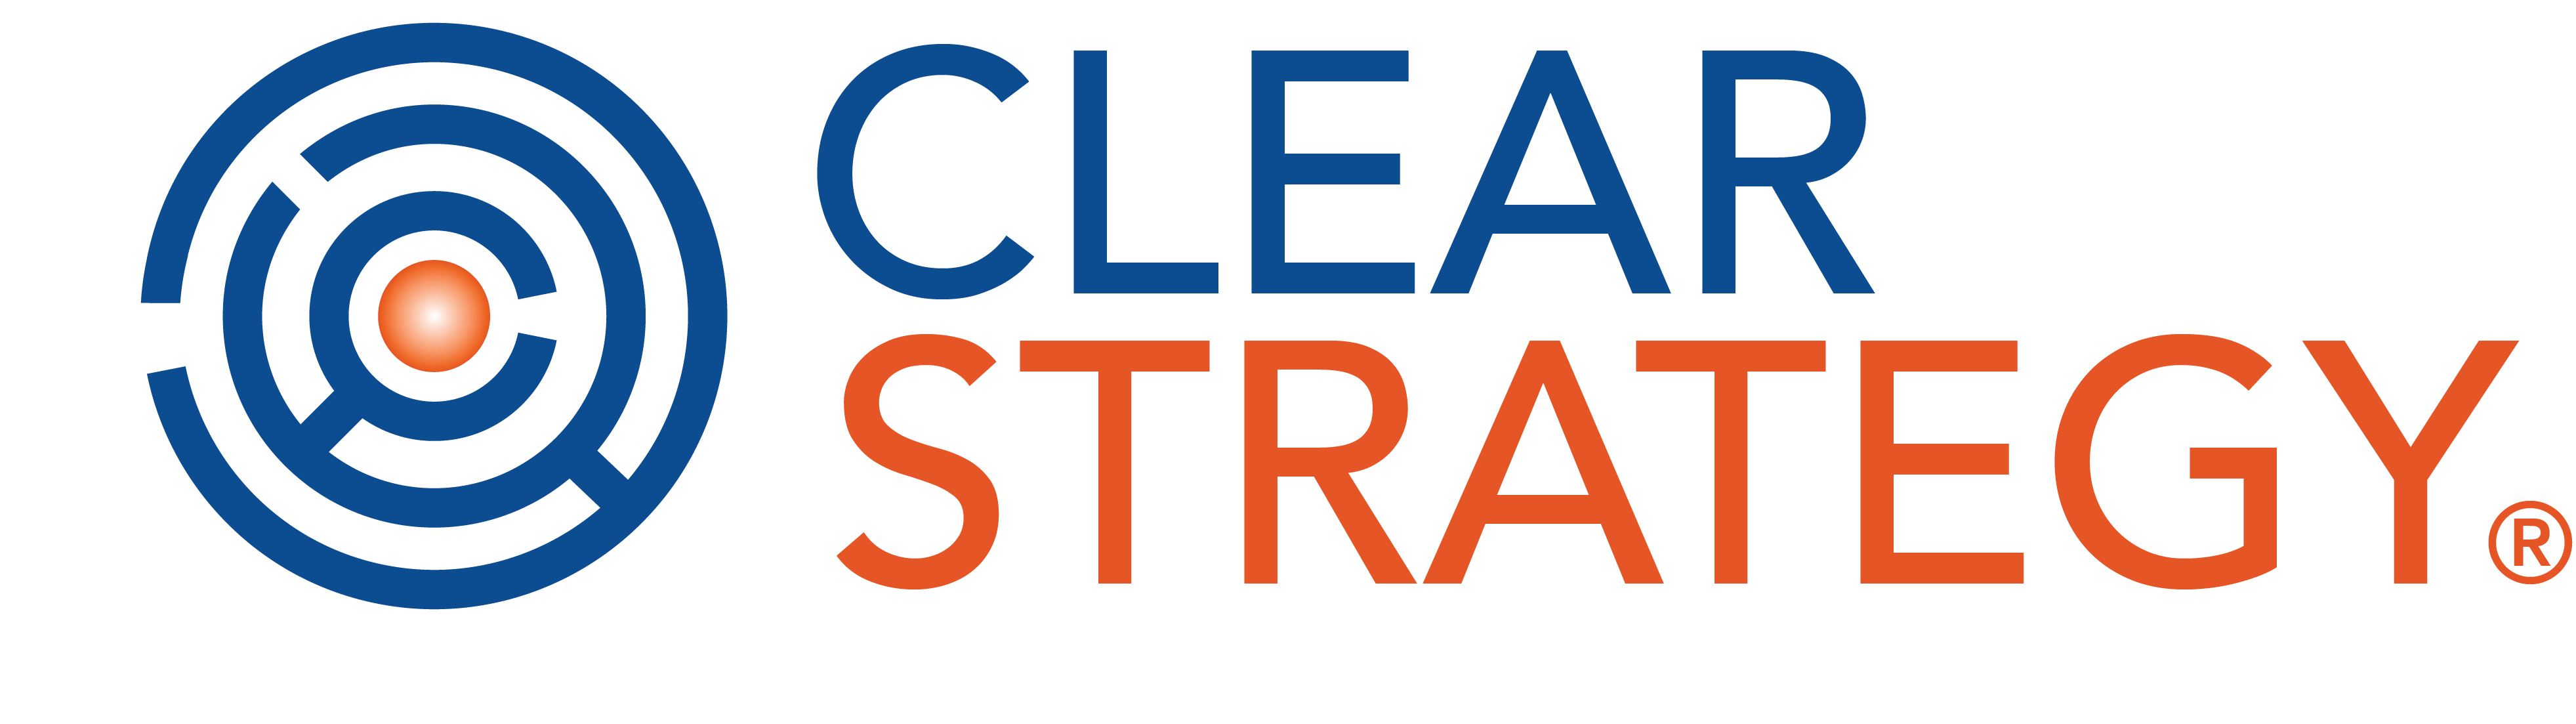 Clear Strategy | Brighton, Michigan | Industry Leading Finance & Insurance Services